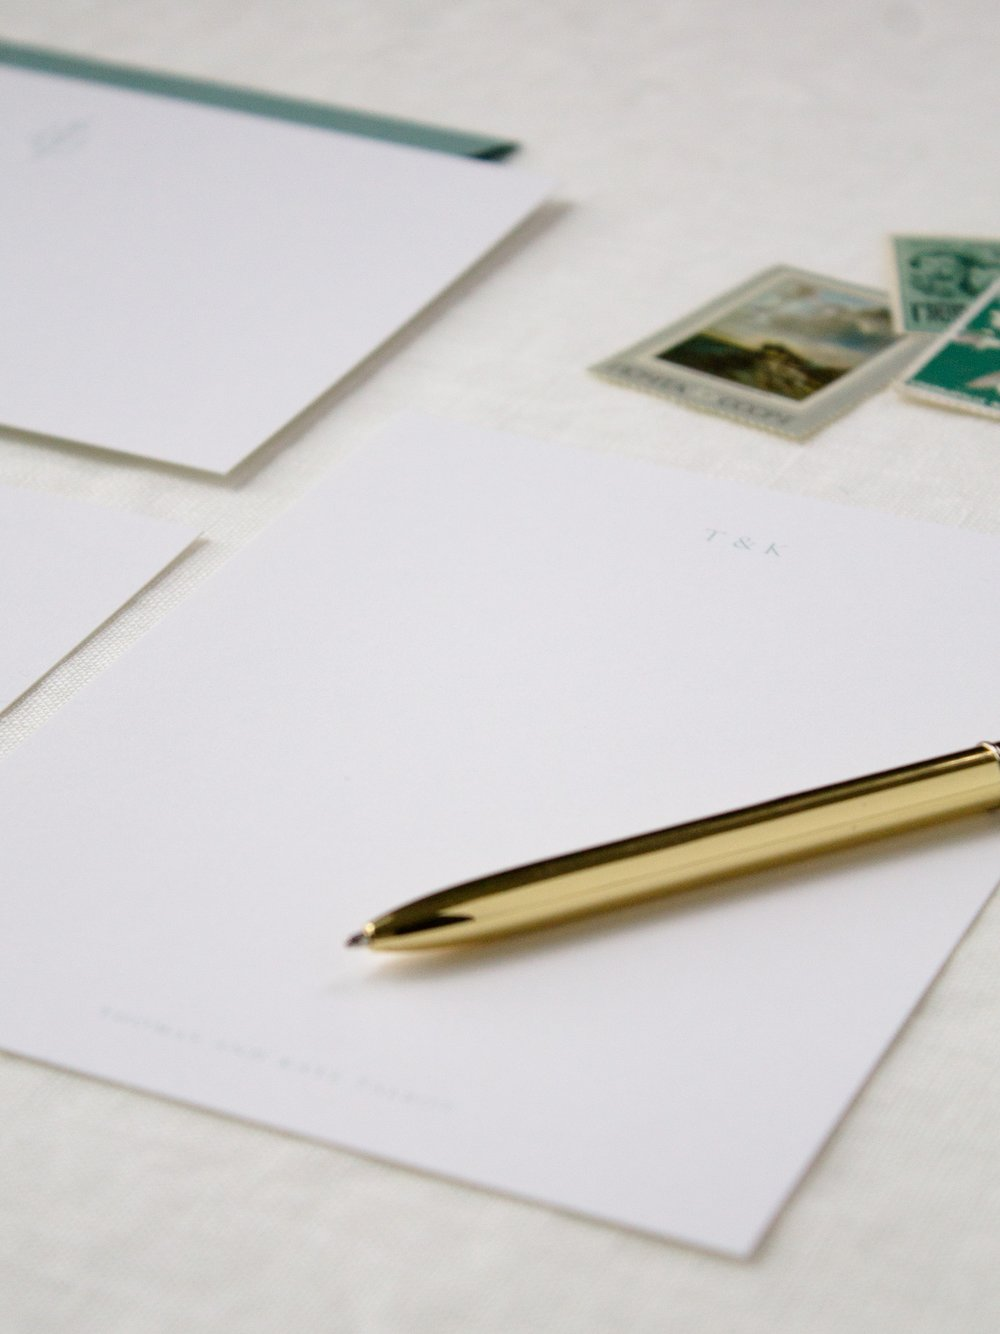 PersonalizedStationery - •  •  •Create your own custom stationery with us for notes that are sure to impress. Together, We'll create personalized designs that are UNIQUELY your own.Whether you're looking for a custom monogram, illustration, or something a little more simple, we can craft a stationery set that will embrace who you are.